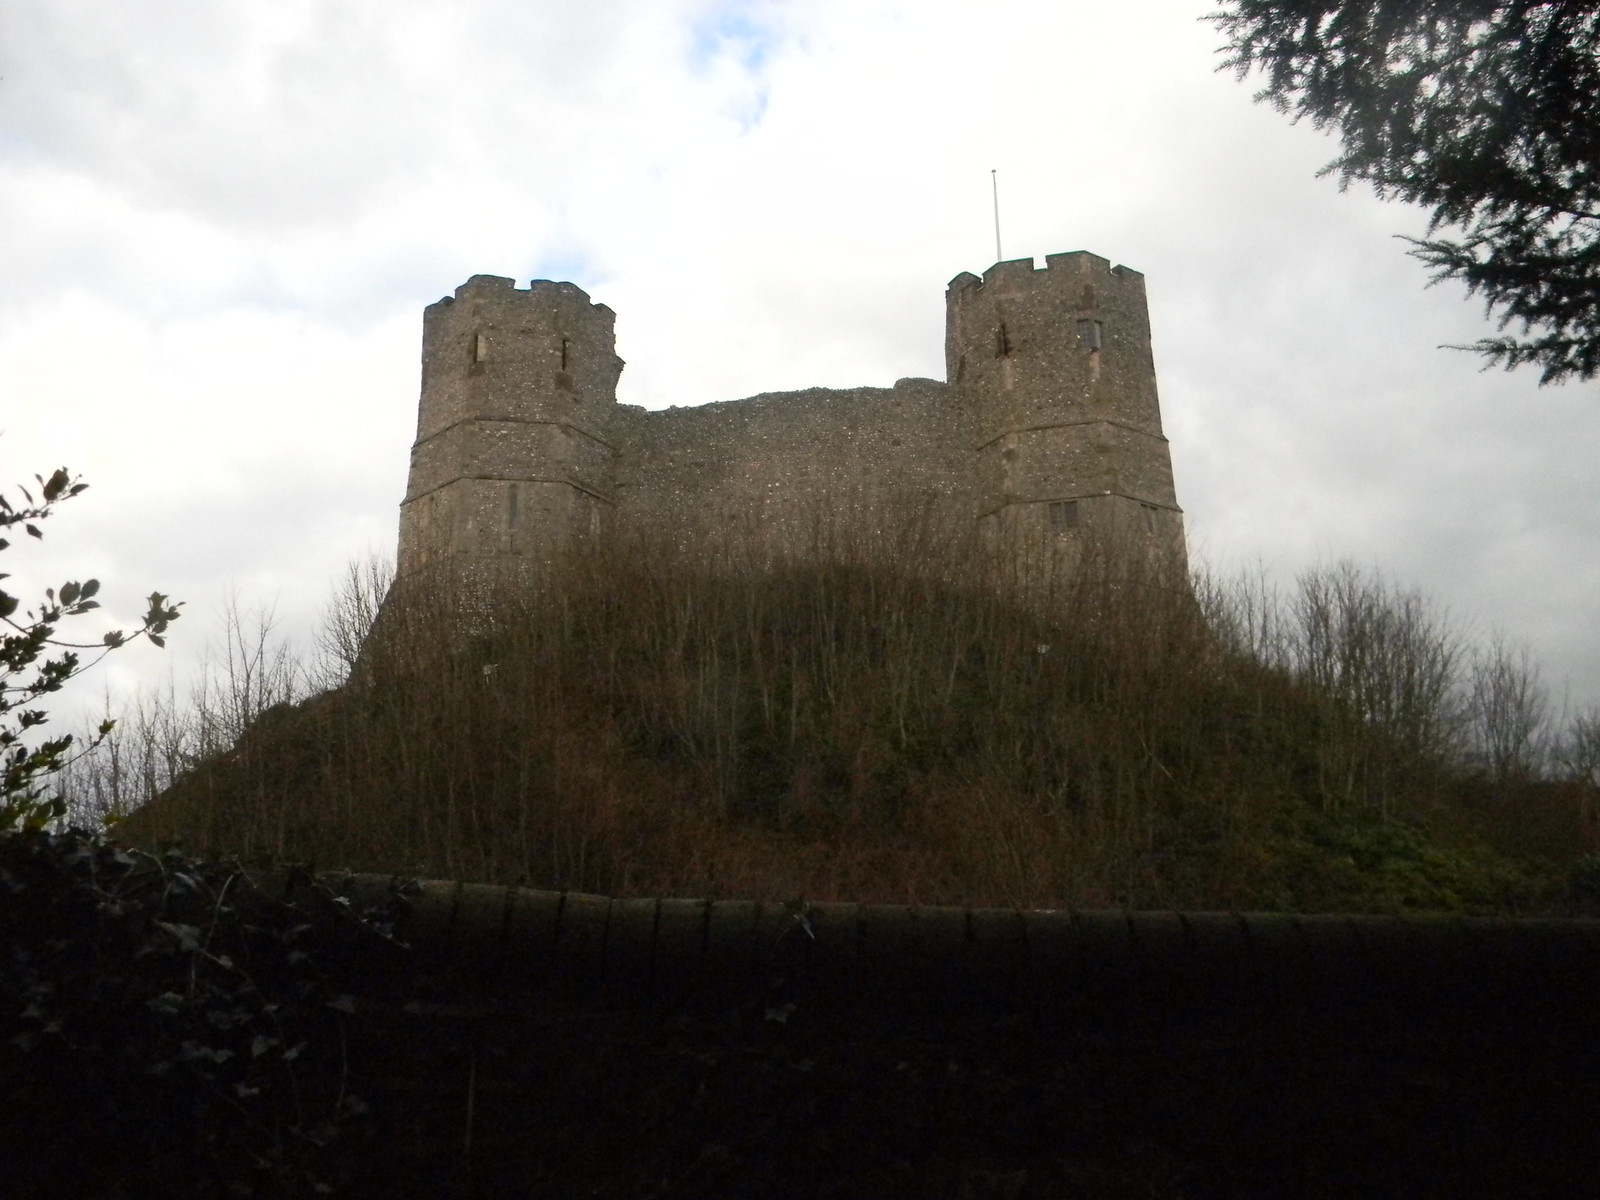 Lewes castle from St Michael's churchyard, Lewes. Hassocks to Lewes